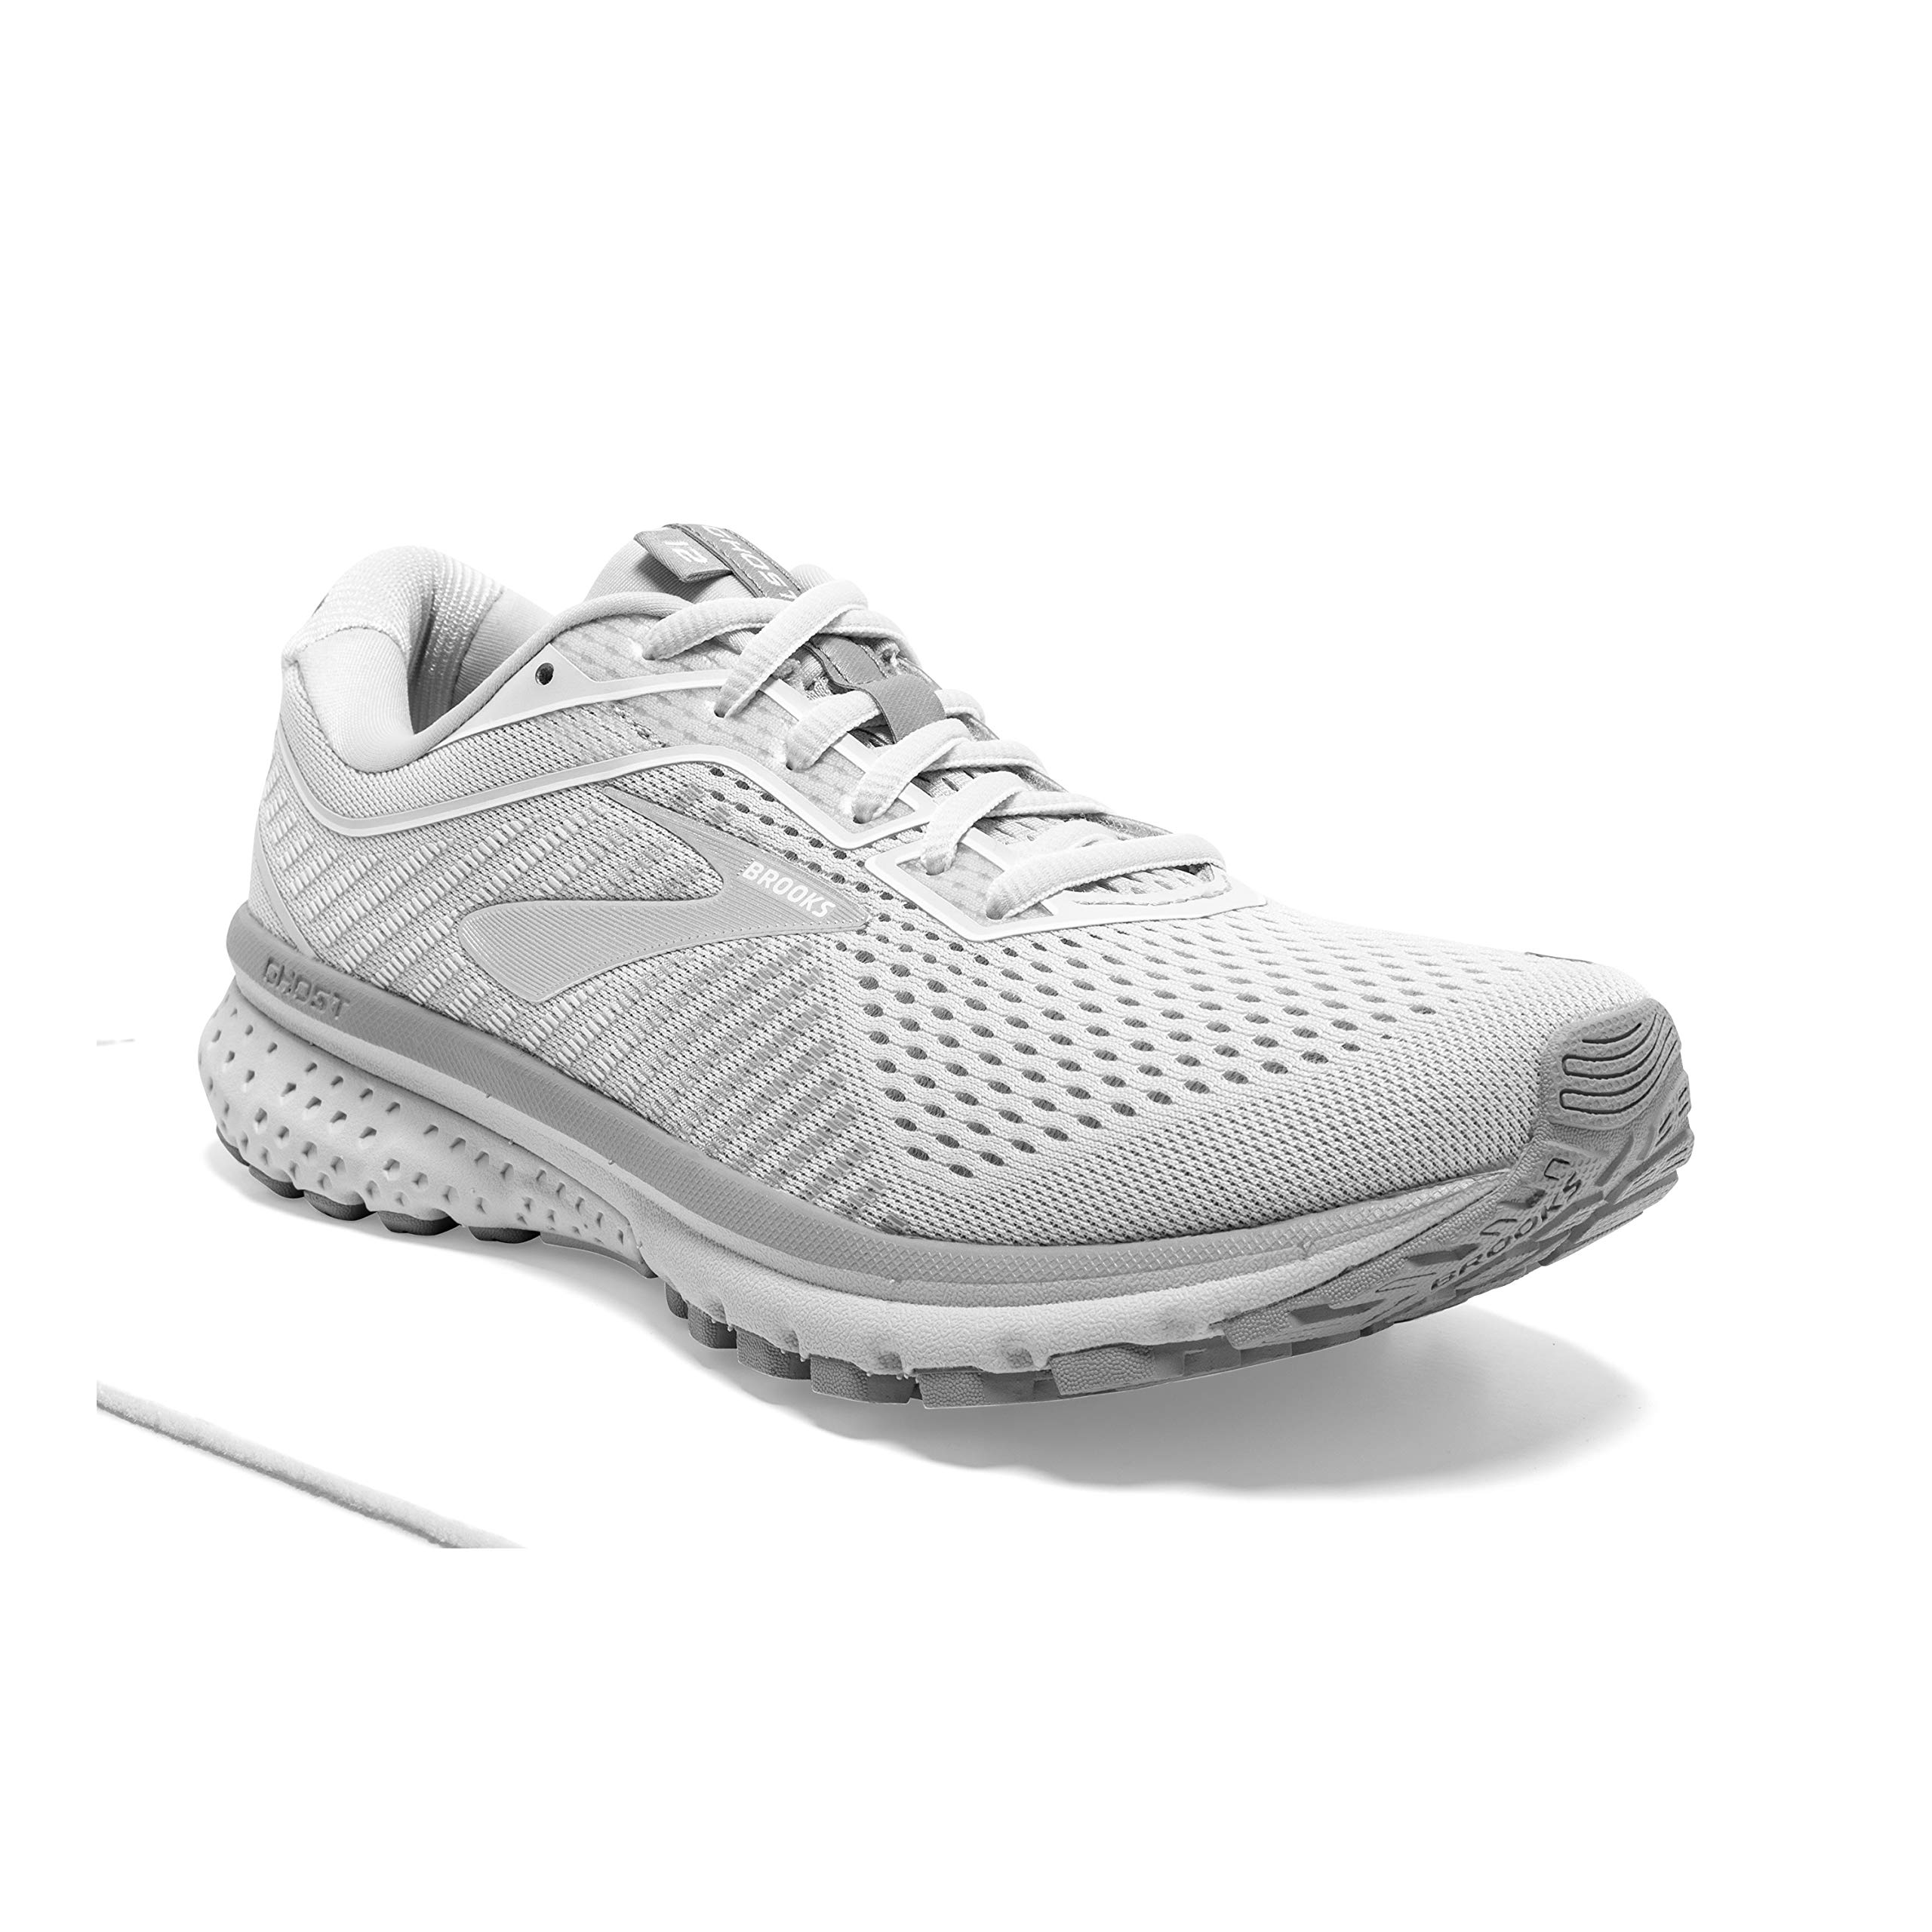 Brooks Womens Ghost 12 Running Shoe - Oyster/Alloy/White - B - 6.0 by Brooks